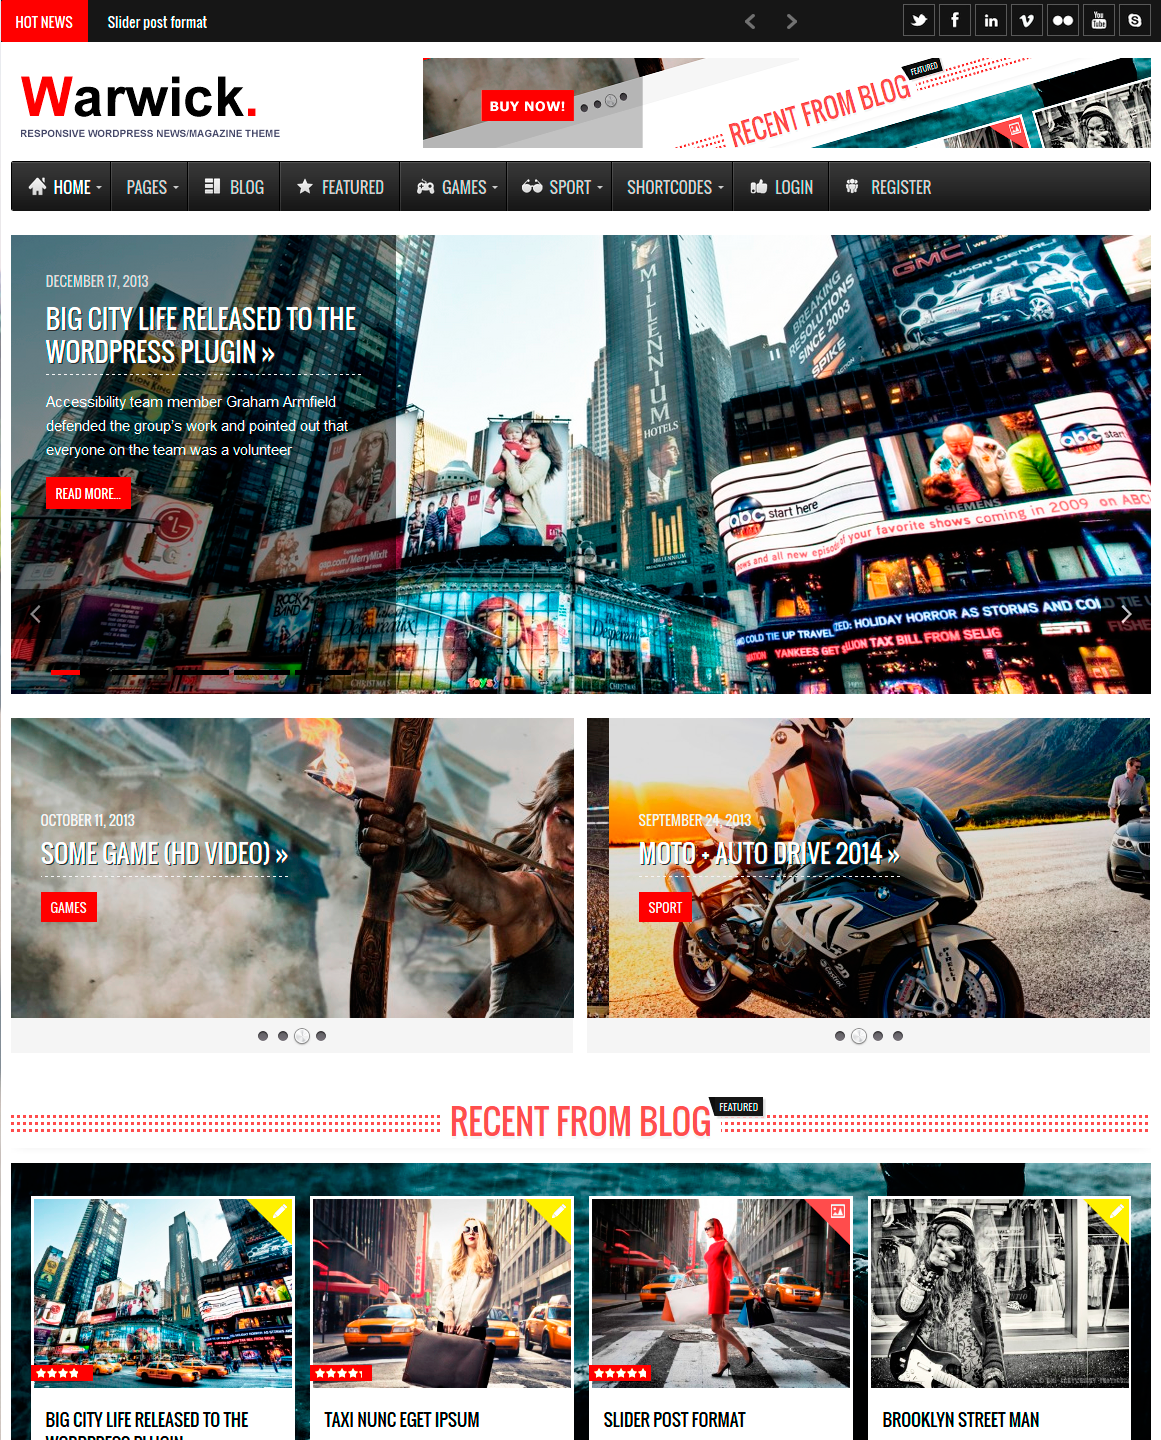 Warwick - Responsive News/Magazine WordPress Theme by RoyalwpThemes